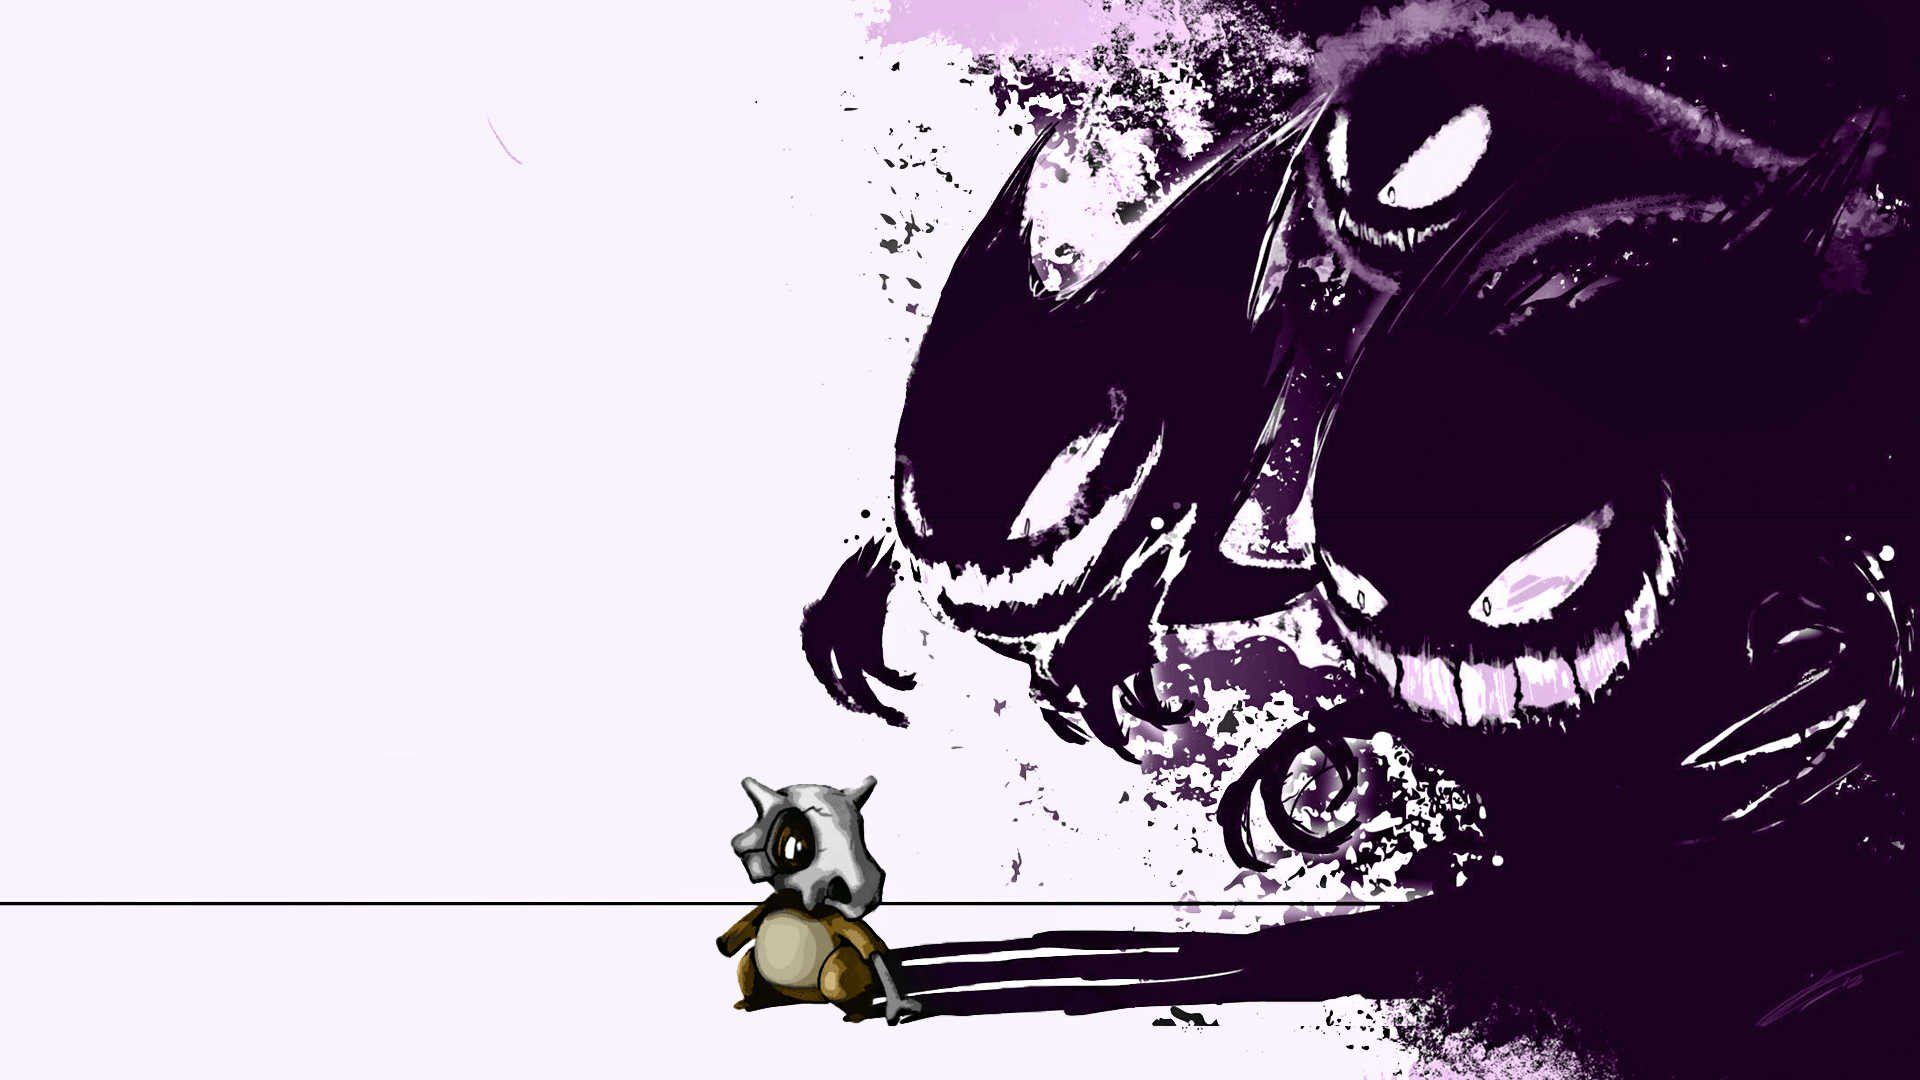 Wallpaper for your desktop s wallpaper gengar wallpaper high - Ghost Type Pokemon Wallpaper Hd Wallpapers Pinterest Ghost Pokemon Wallpaper And Hd Wallpaper